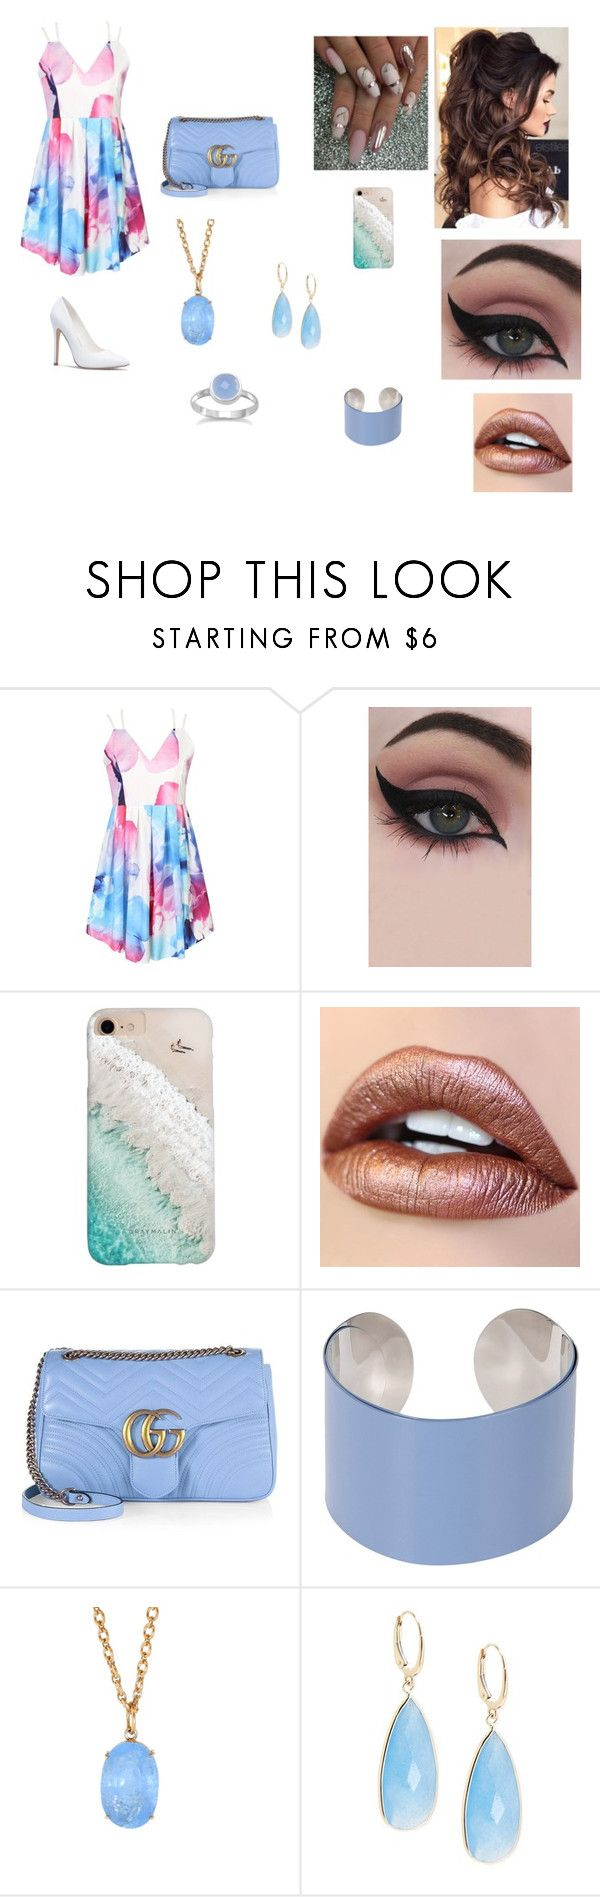 """""""Untitled #174"""" by kaylabethsimpson on Polyvore featuring Concrete Minerals, Gray Malin, Gucci, Maison Margiela, Irene Neuwirth and Saks Fifth Avenue"""